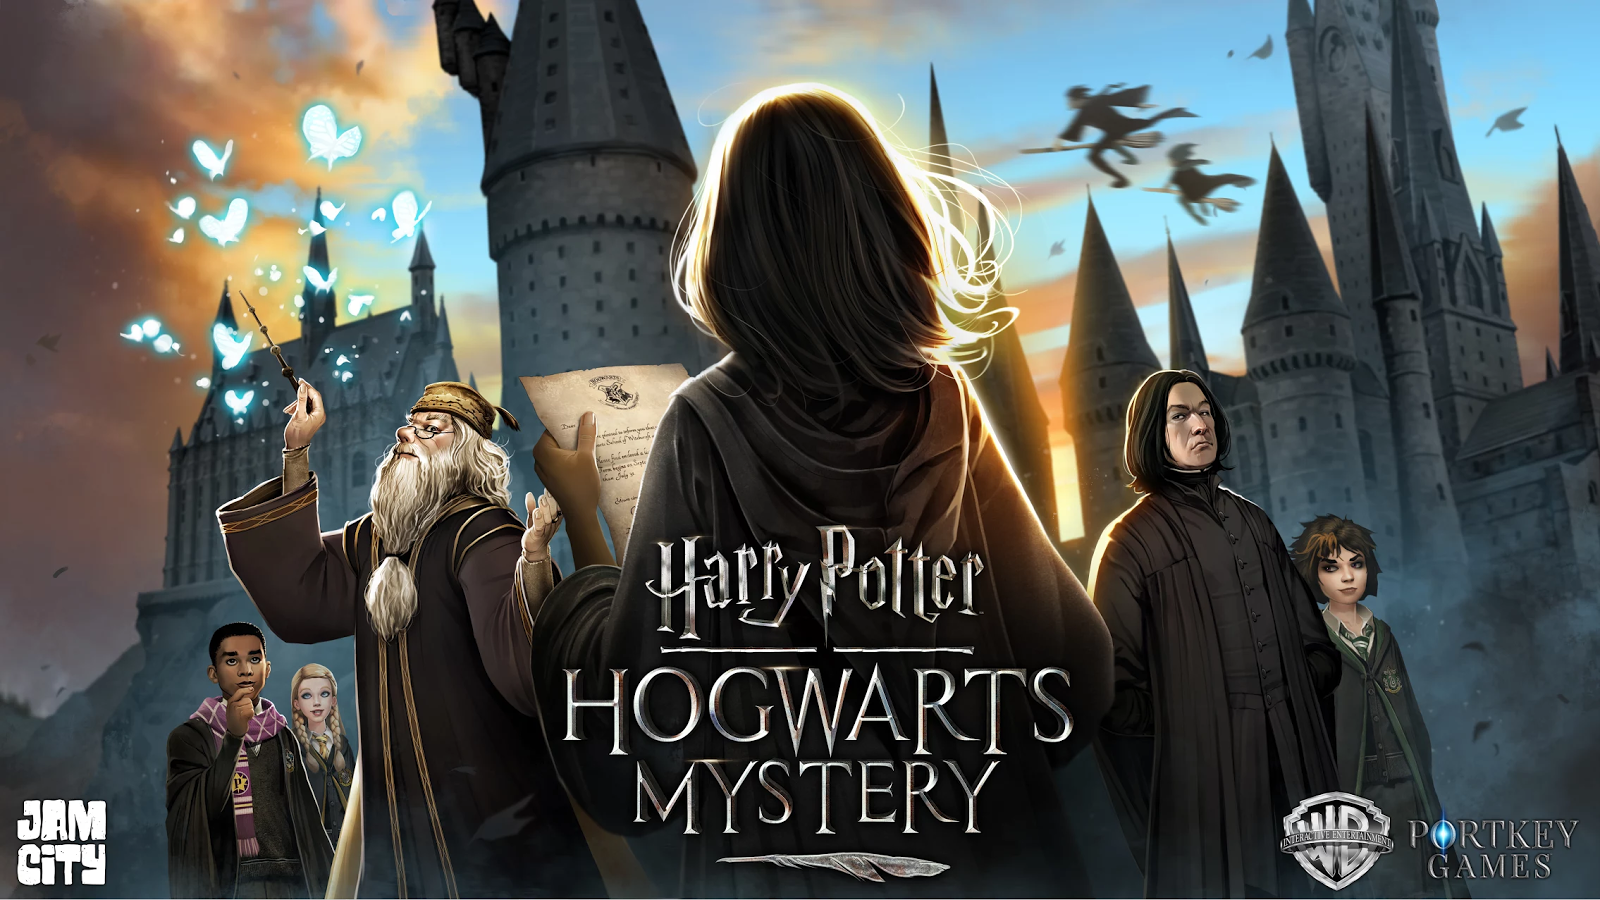 Free New Harry Potter Game Hogwarts Mystery Out Now On Mobile